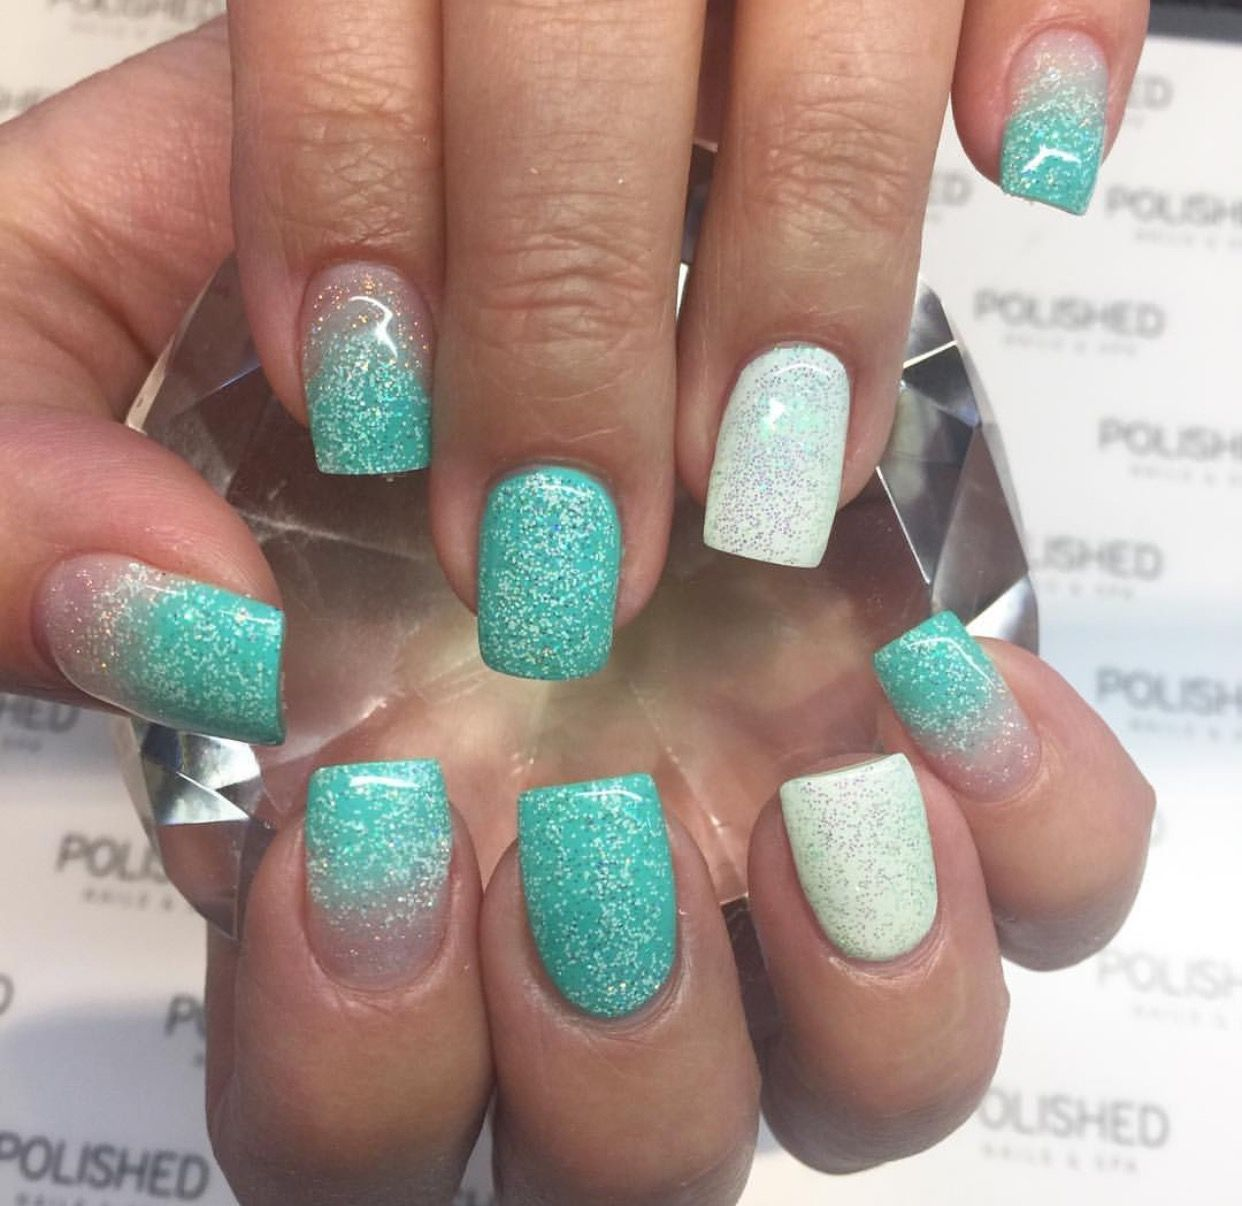 Pin by L. Spears on Nails   Nail tattoo, Gradiant nails, Nails